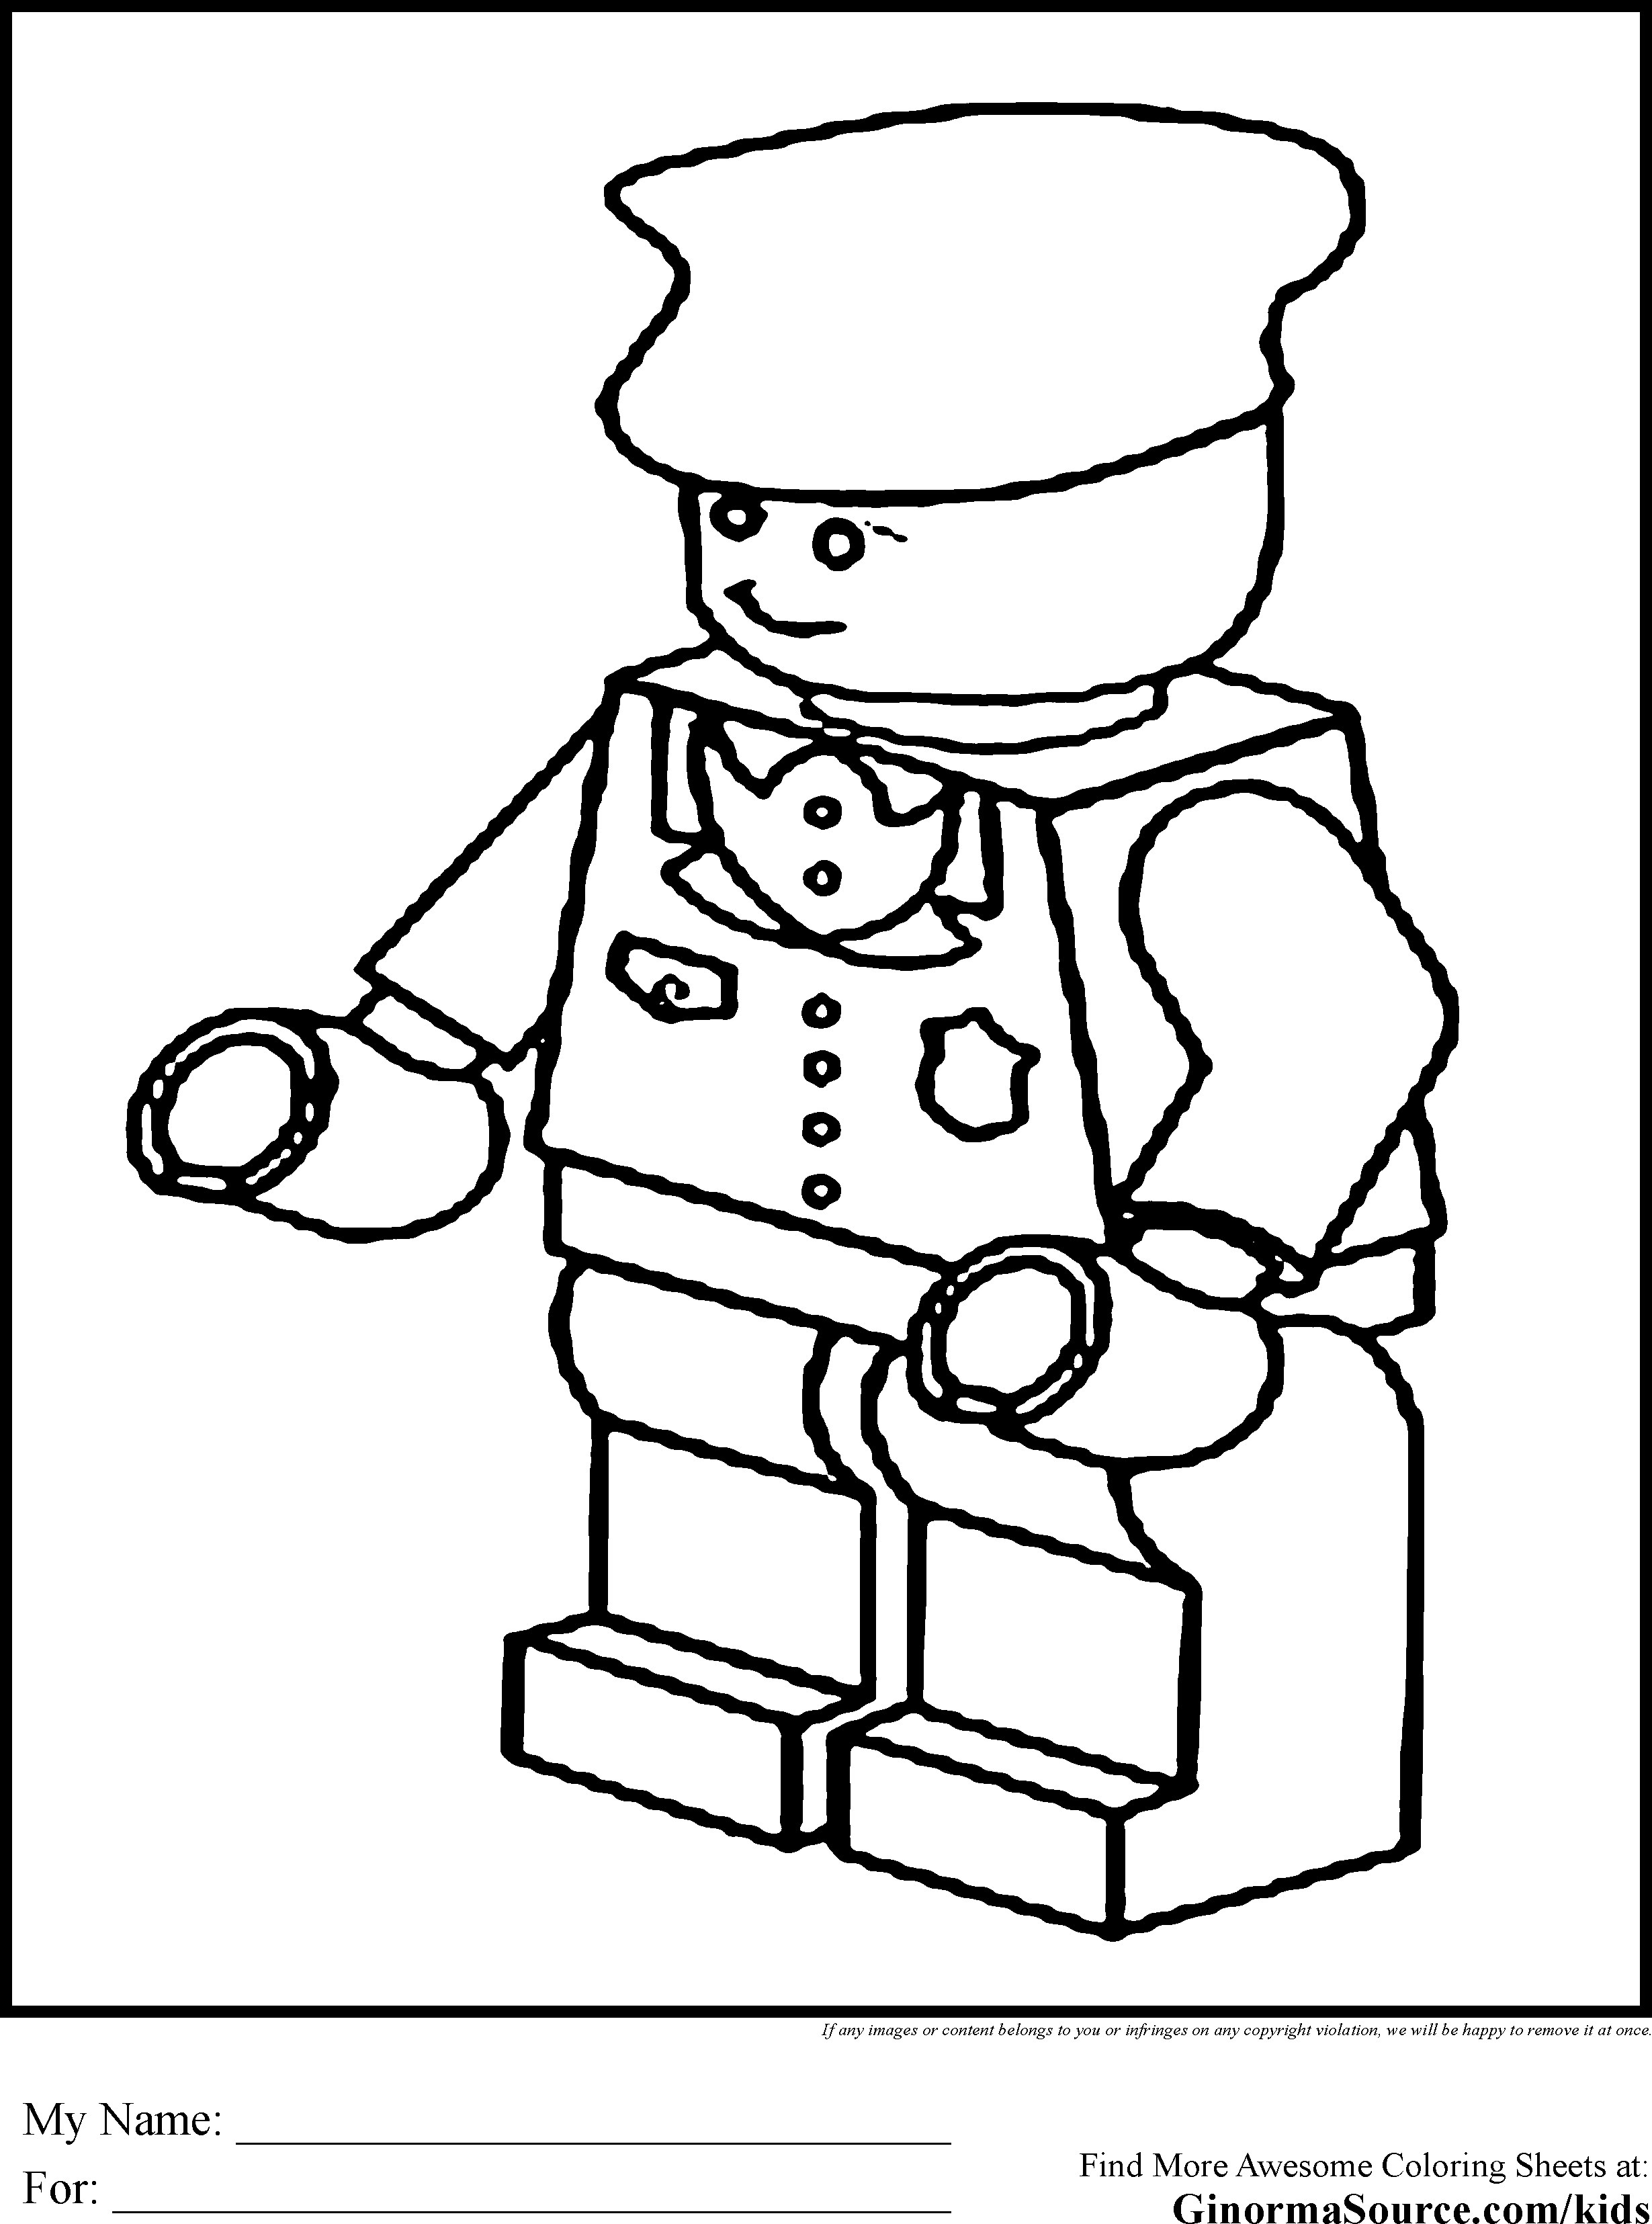 Lego People Coloring Pages At Getcolorings